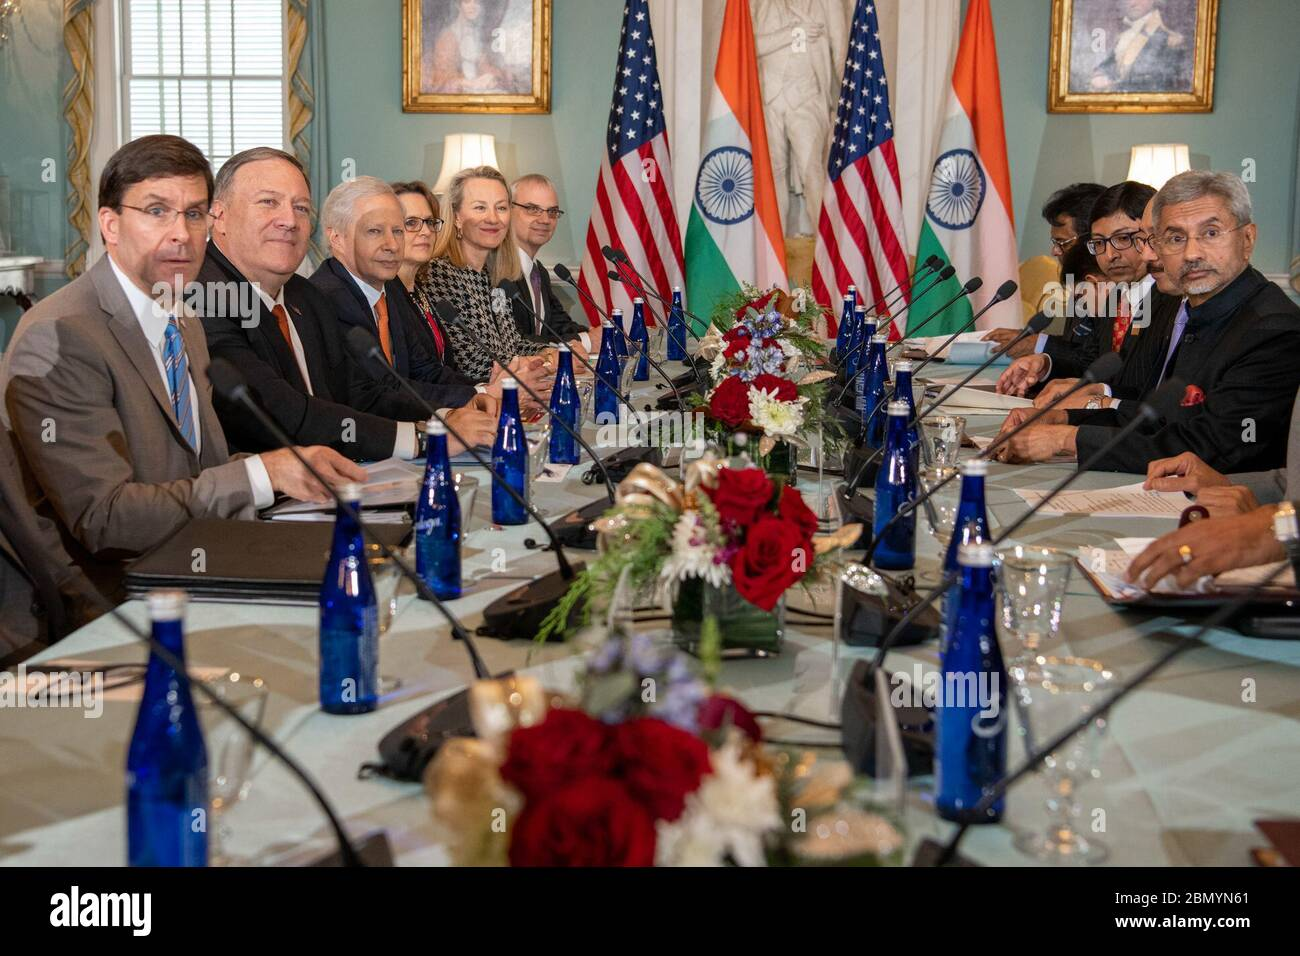 Secretary Pompeo and Secretary of Defense Esper Host the India 2+2 Ministerial Dialogue Secretary of State Michael R. Pompeo and Secretary of Defense Mark T. Esper host the India 2+2 Ministerial Dialogue at the U.S. Department of State, in Washington, DC, on December 18, 2019. Stock Photo